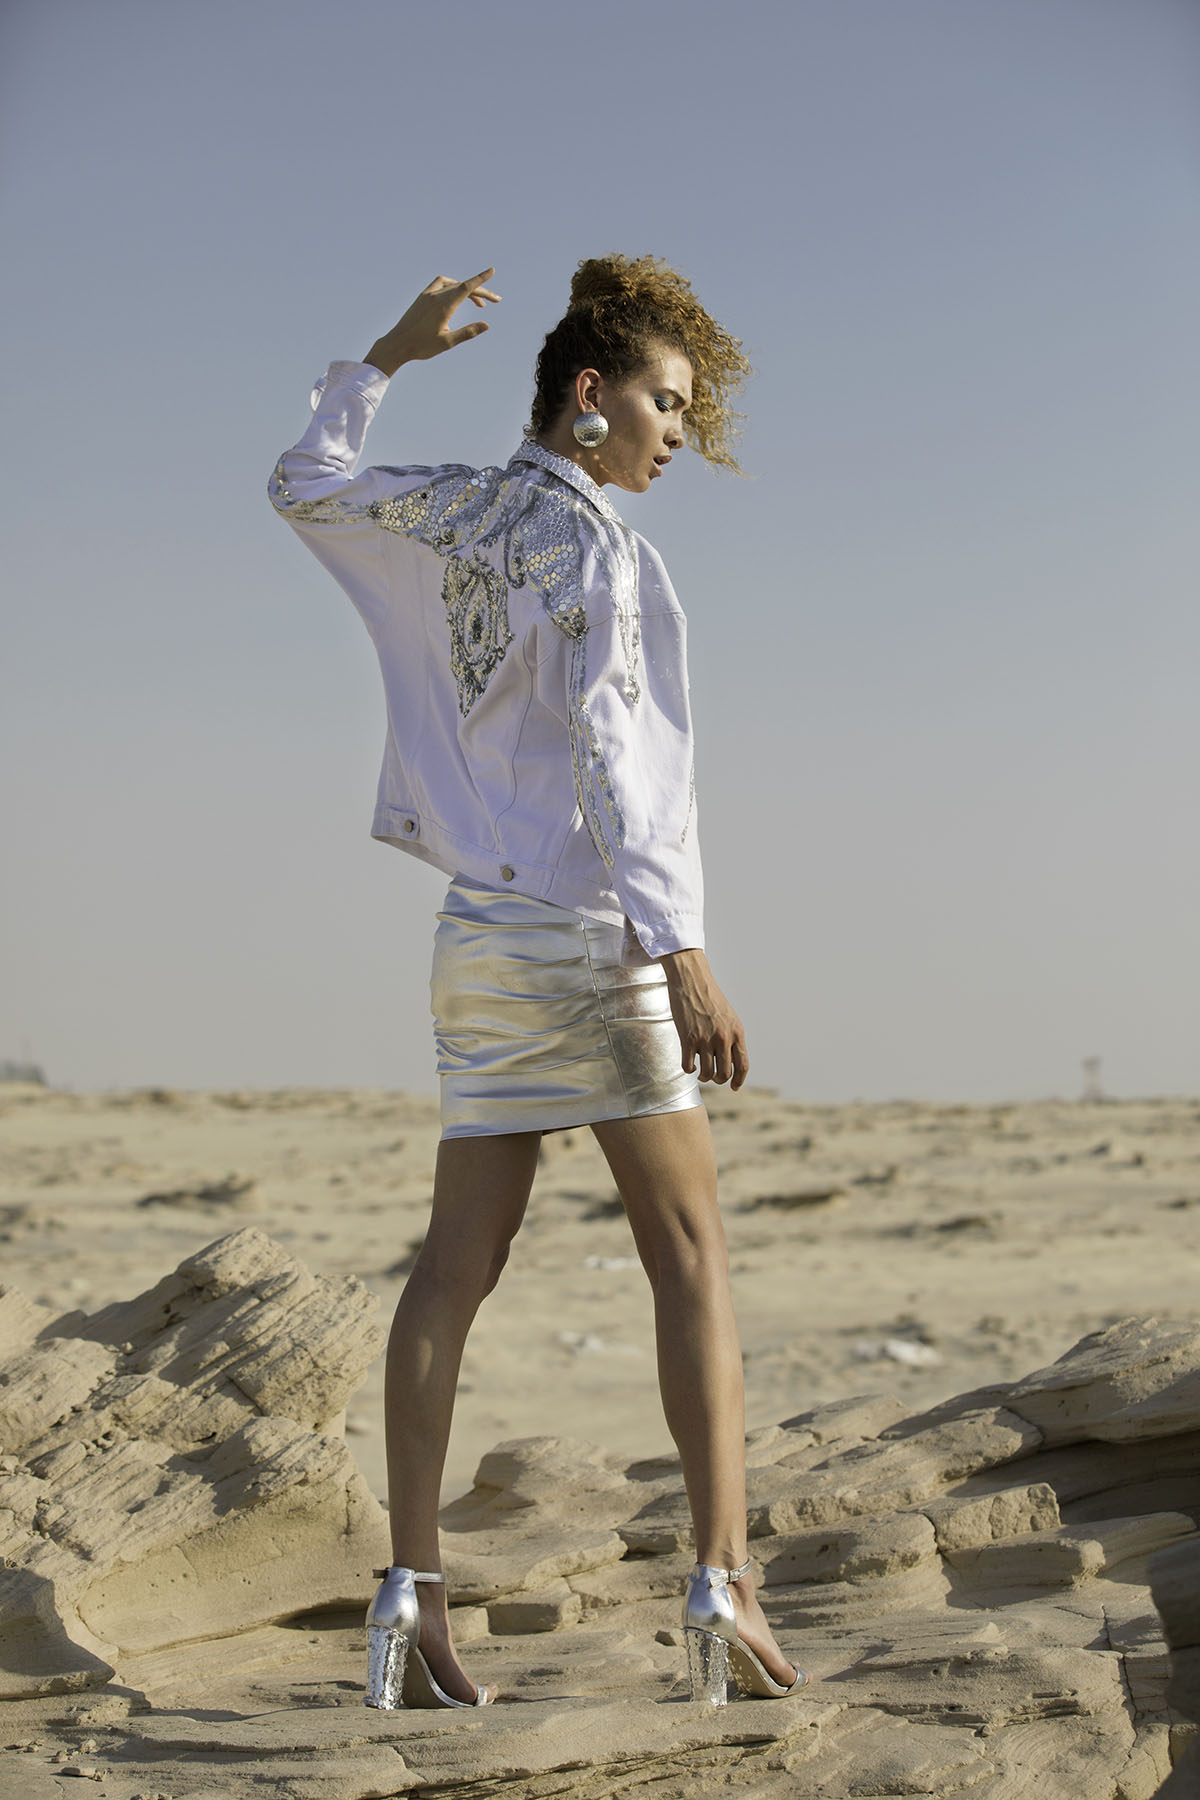 Fashion editorial Abu Dhabi by Loesje Kessels Fashion Photographer Dubai